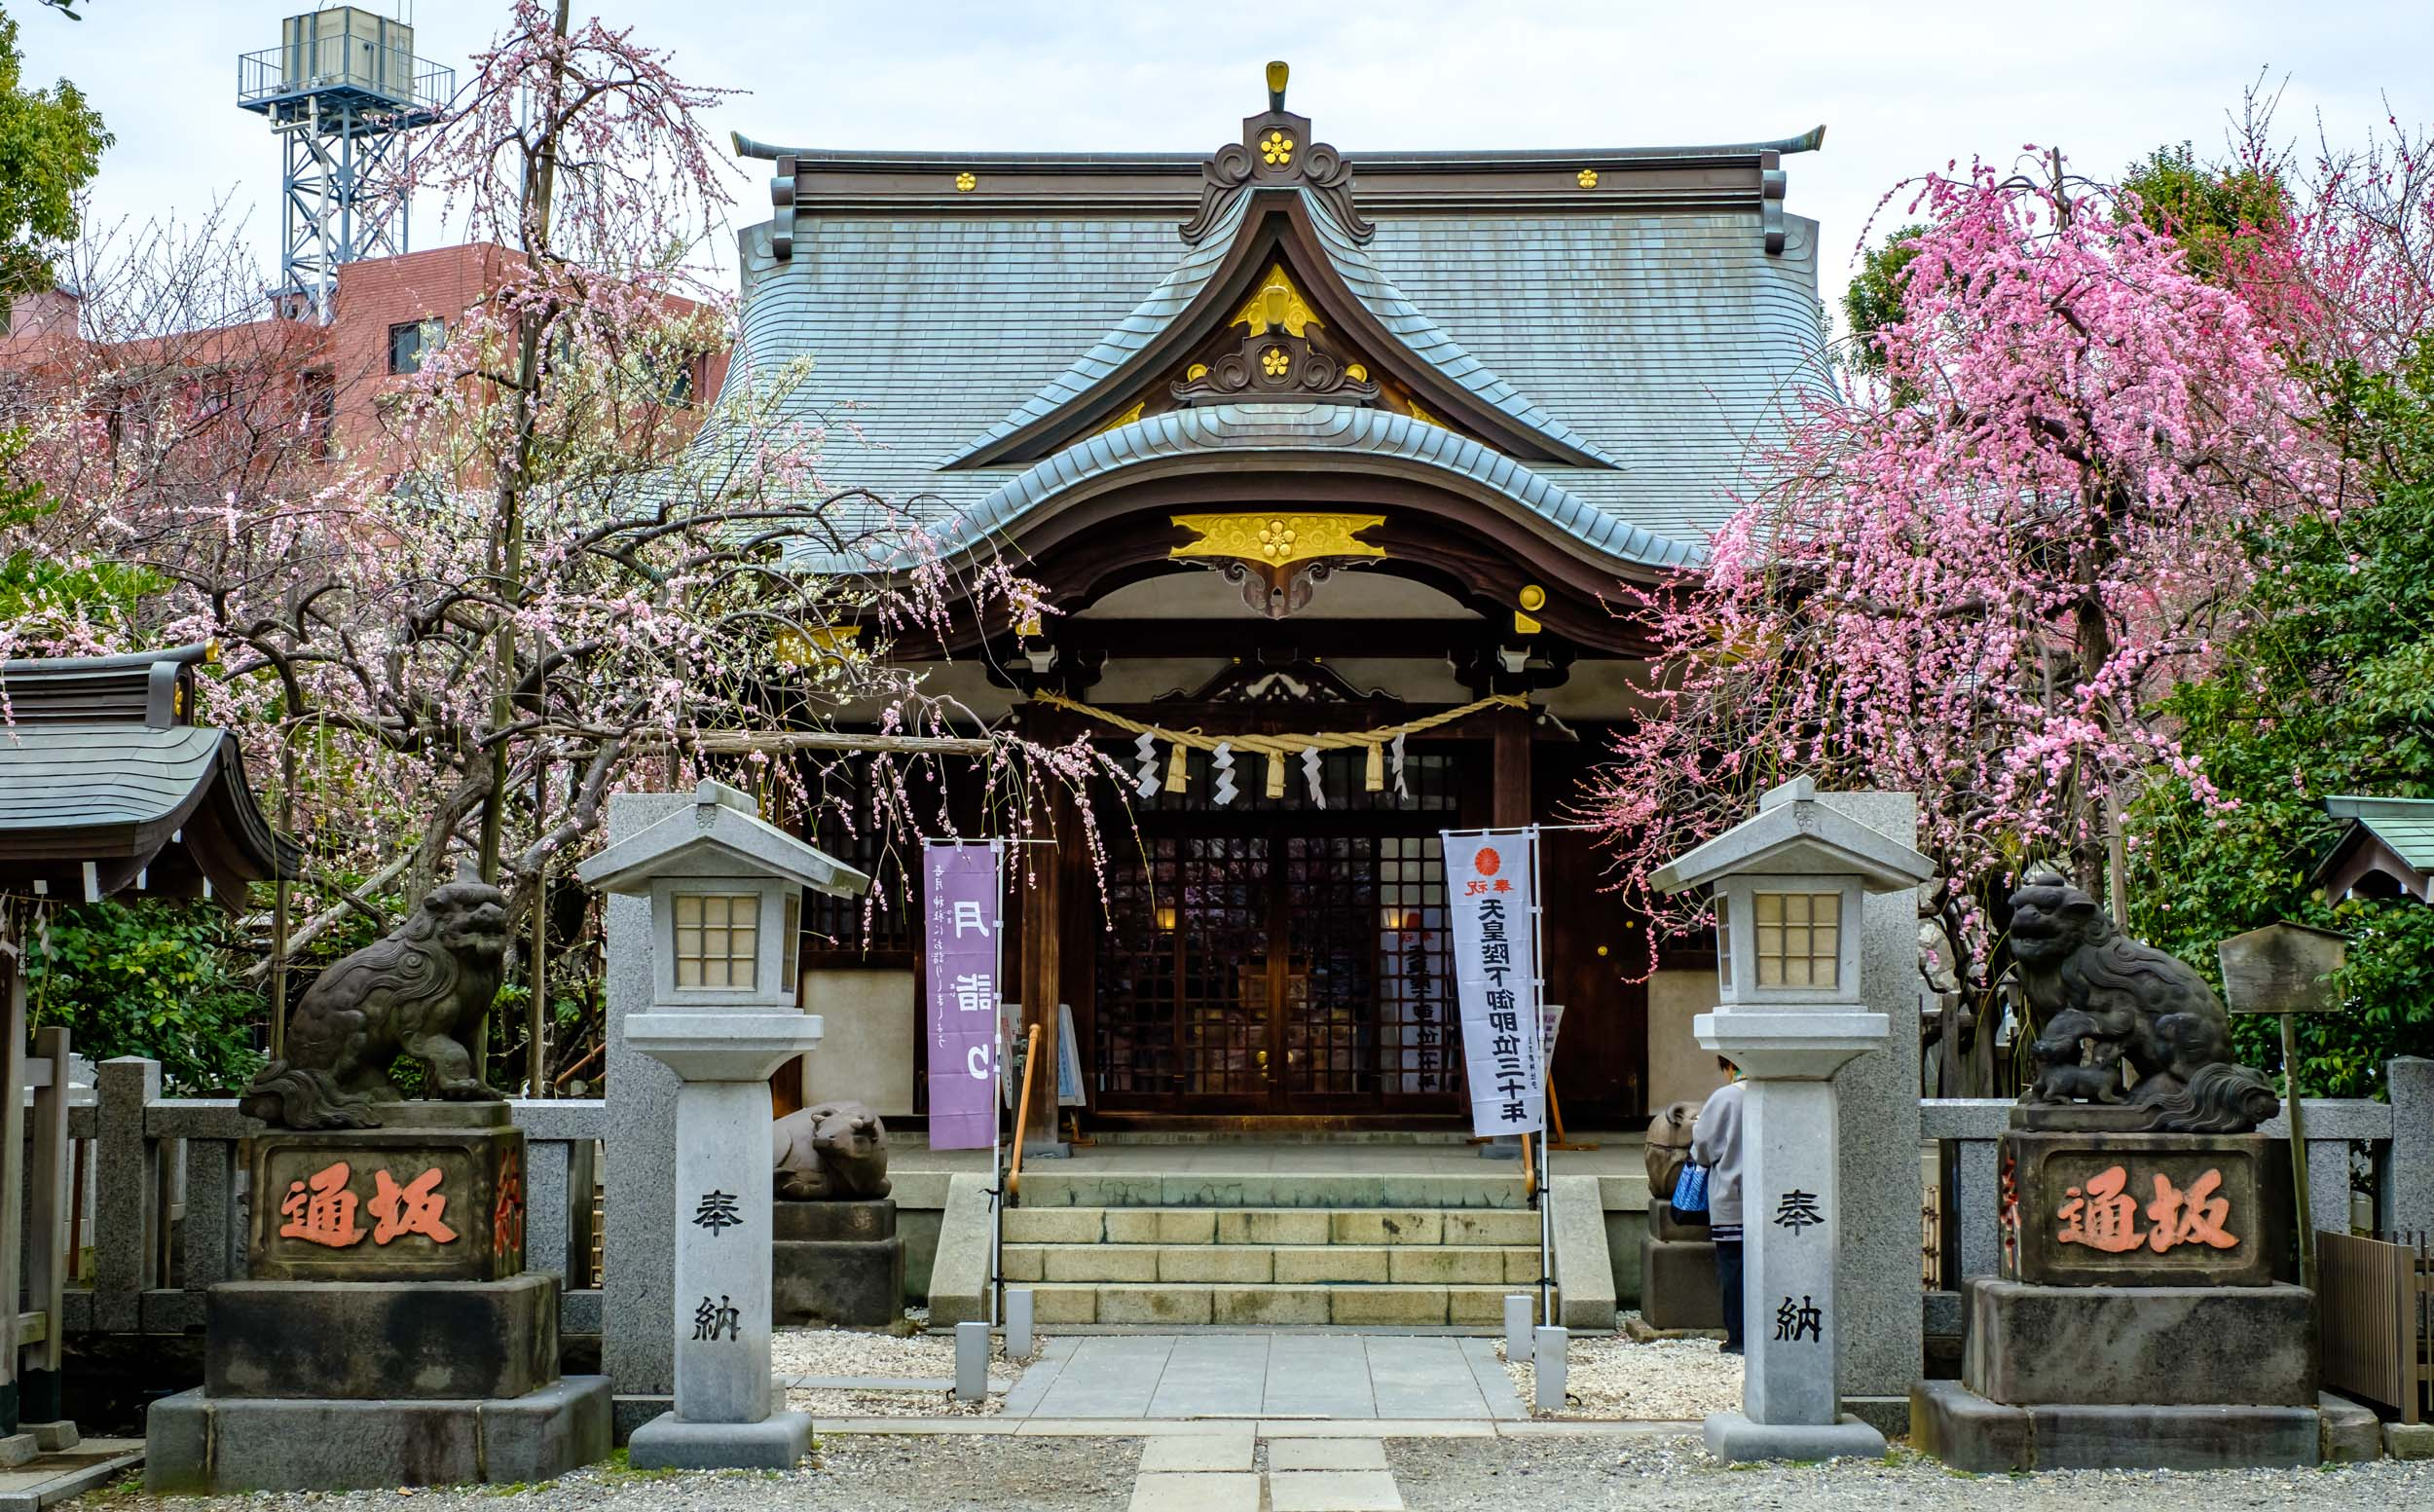 Ushi Tenjin Kitano Shrine when the plum blossoms were in full bloom, during 2019